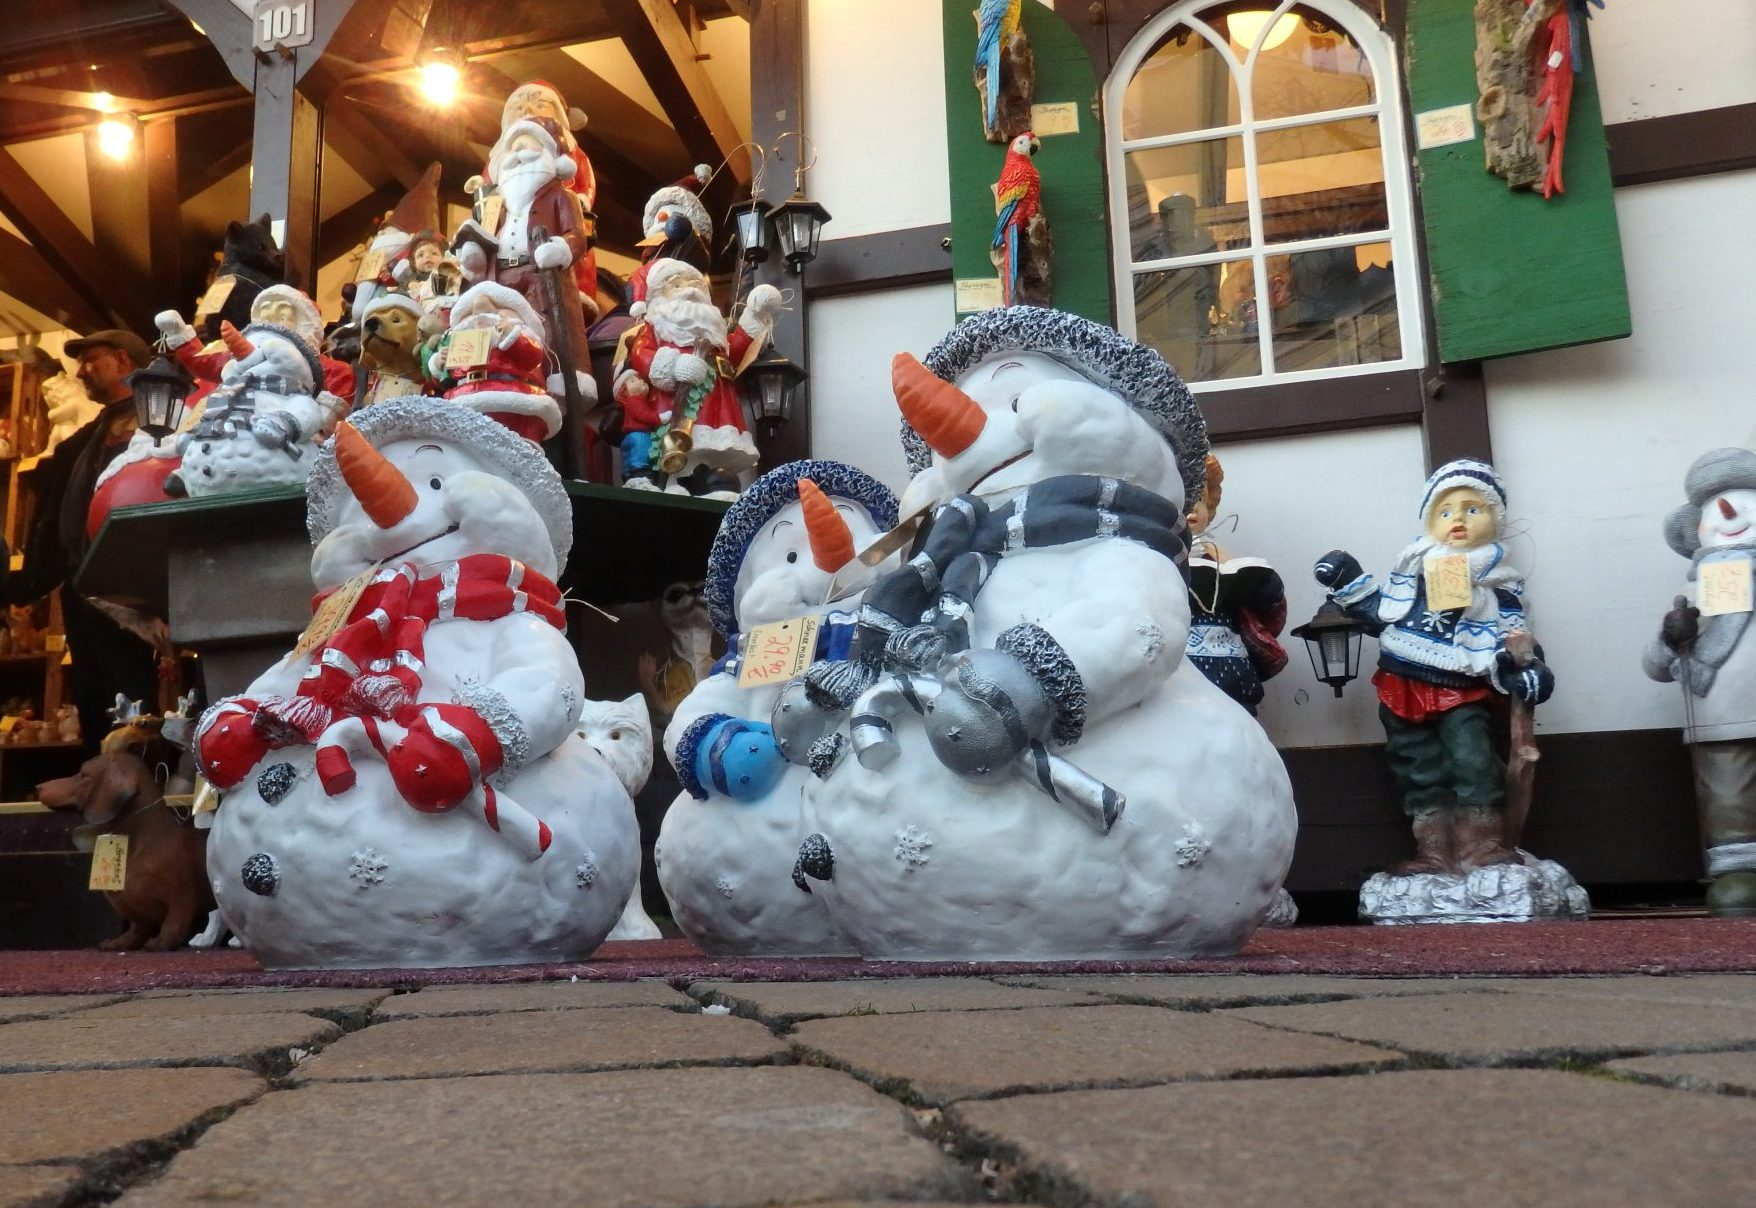 Or you can buy silly Christmas snowmen!